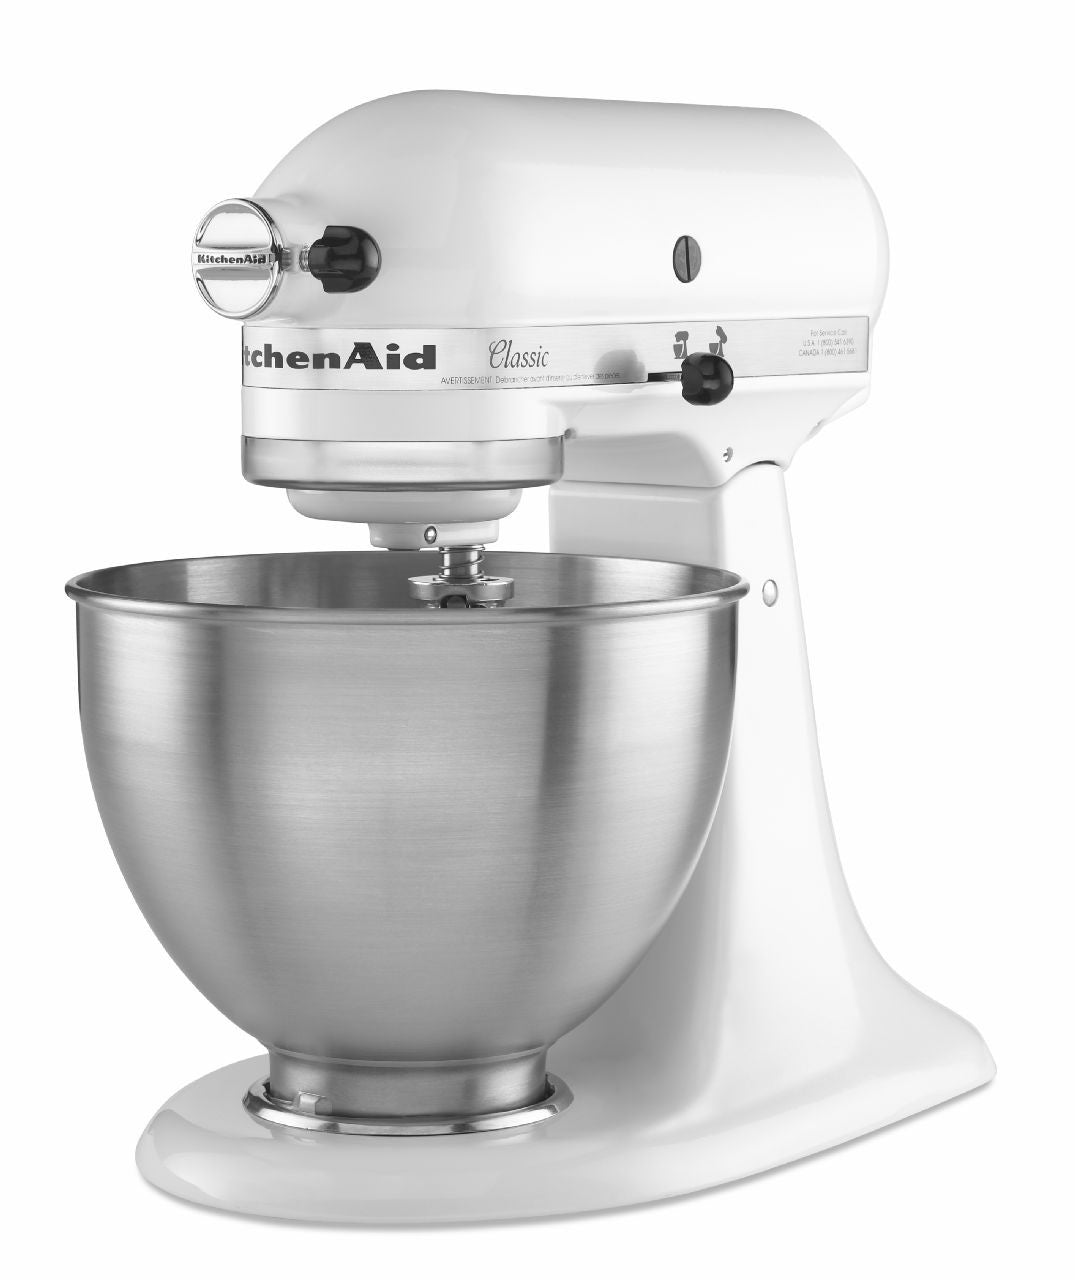 Kitchenaid Classic Series 45 Quart Tilt Head Stand Mixer kitchenaid 4.5 qt. tilt-head classis series stand mixer - white